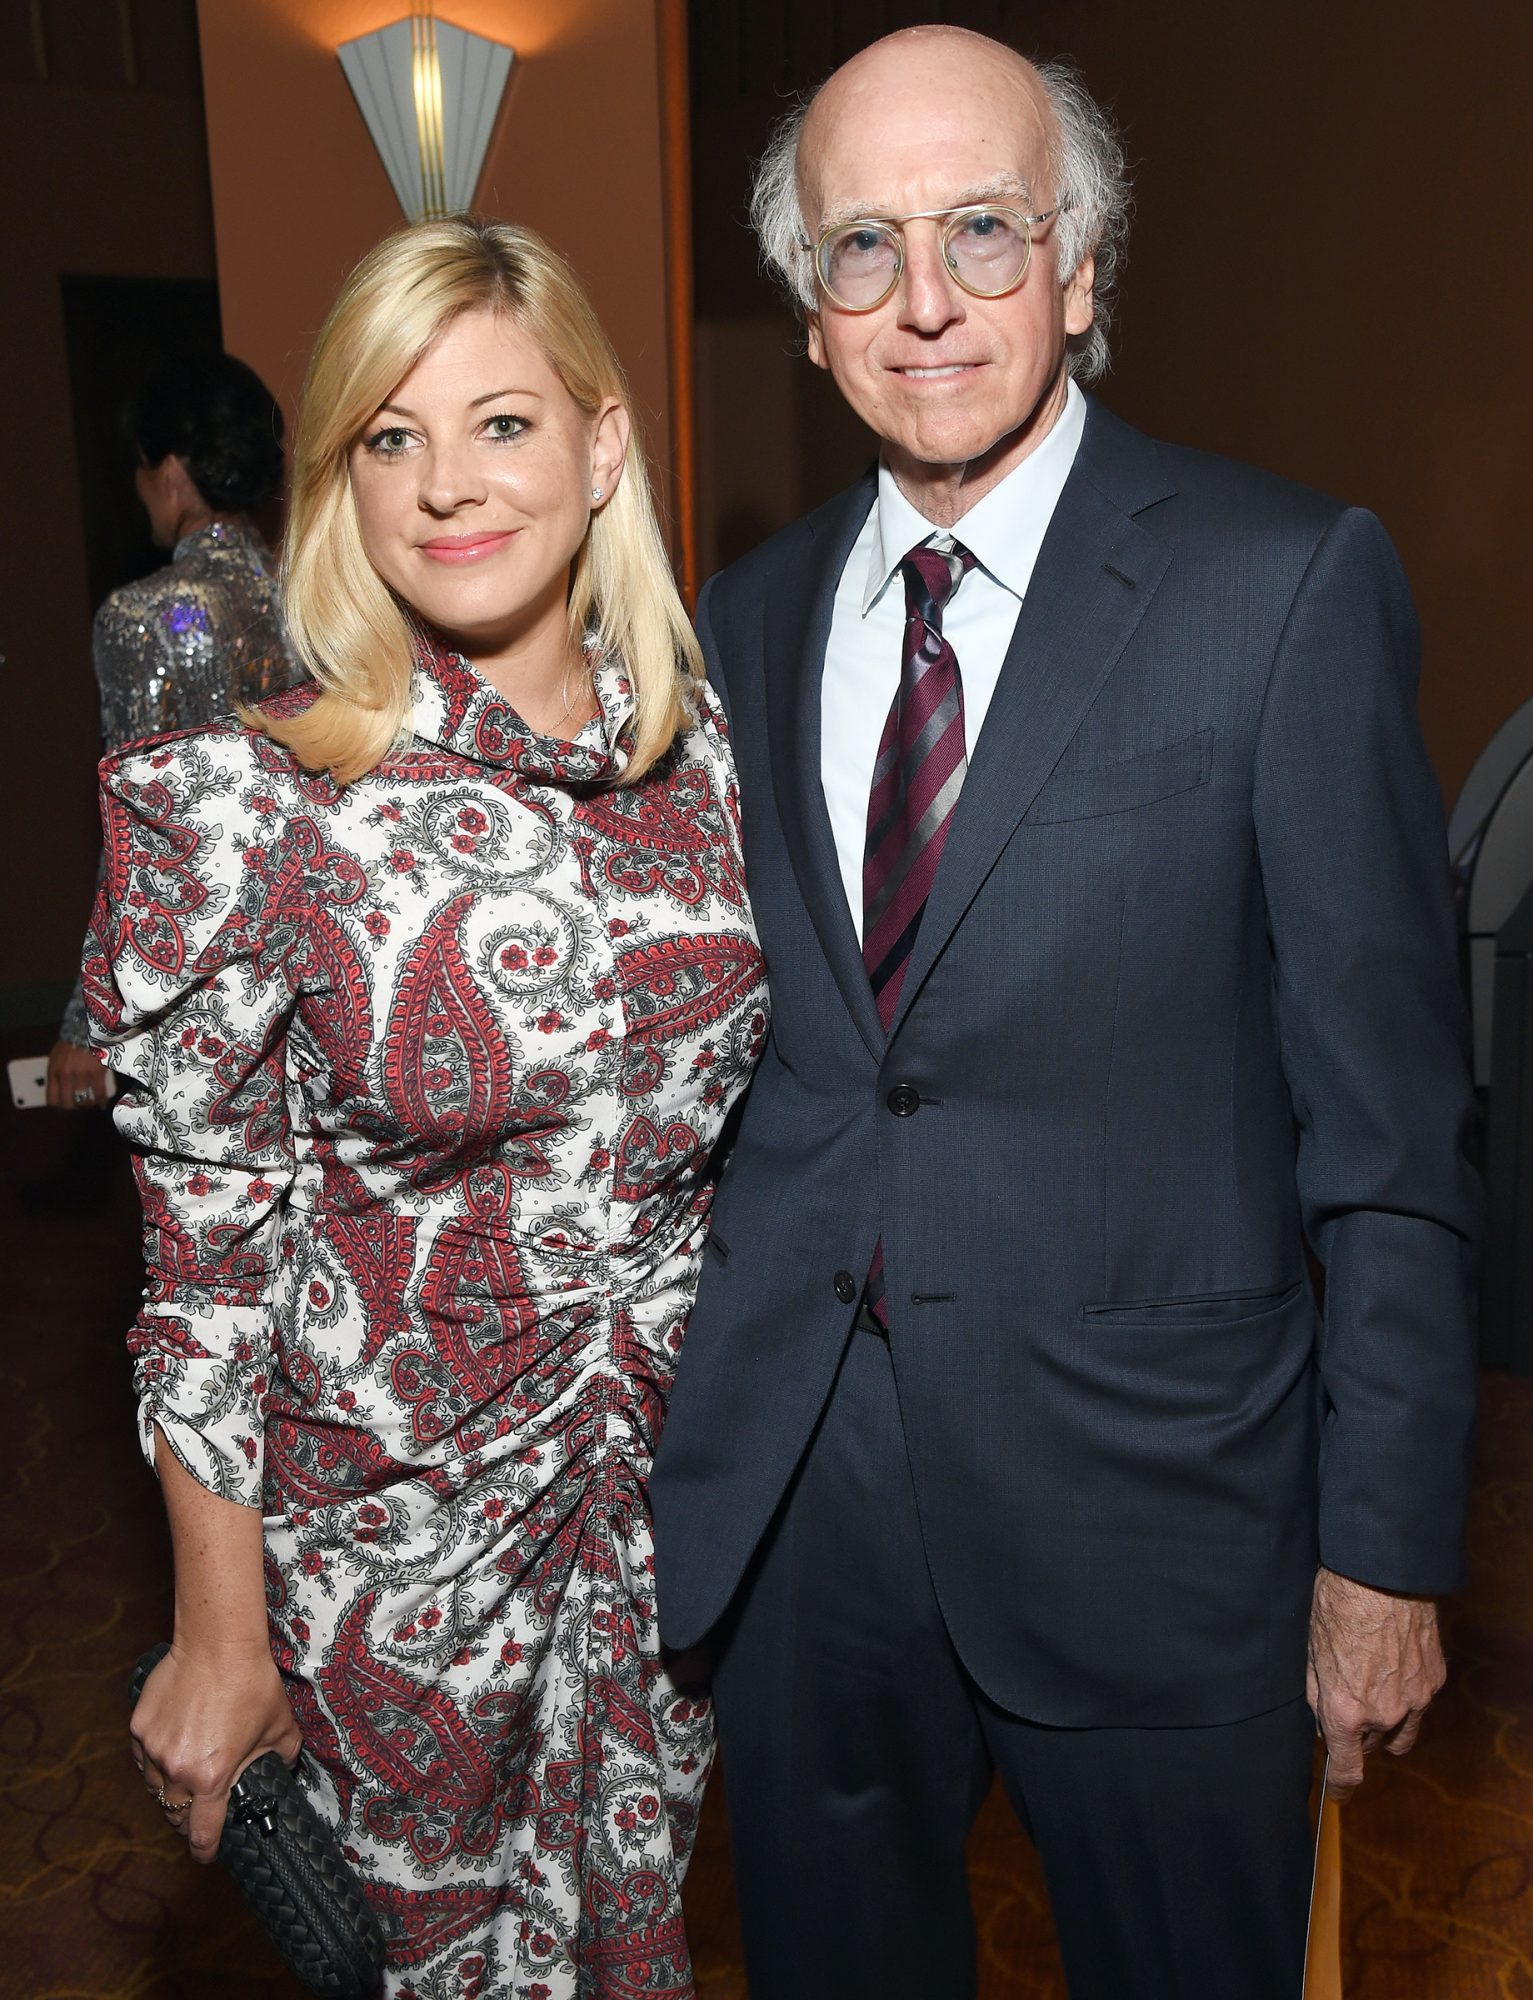 TheCurb Your Enthusiasm creator and star, 73, wed his girlfriend Ashley Underwood on Oct. 7 in Southern California, PEOPLE has learned.                             David and Underwood met in 2017 atSacha Baron Cohen's birthday party, David revealed in aNew York Timesprofile in April. Underwood worked as a producer on Cohen's Showtime satire series,Who Is America?, and is friends with Cohen's wifeIsla Fisher, who guest-starred in the most recent season ofCurb Your Enthusiasm.                             It's the second marriage for the comedian, who was married to environmental activist Laurie David for 14 years. The two, who share daughtersCazzie, 26, and Romy, 24,splitin 2007.